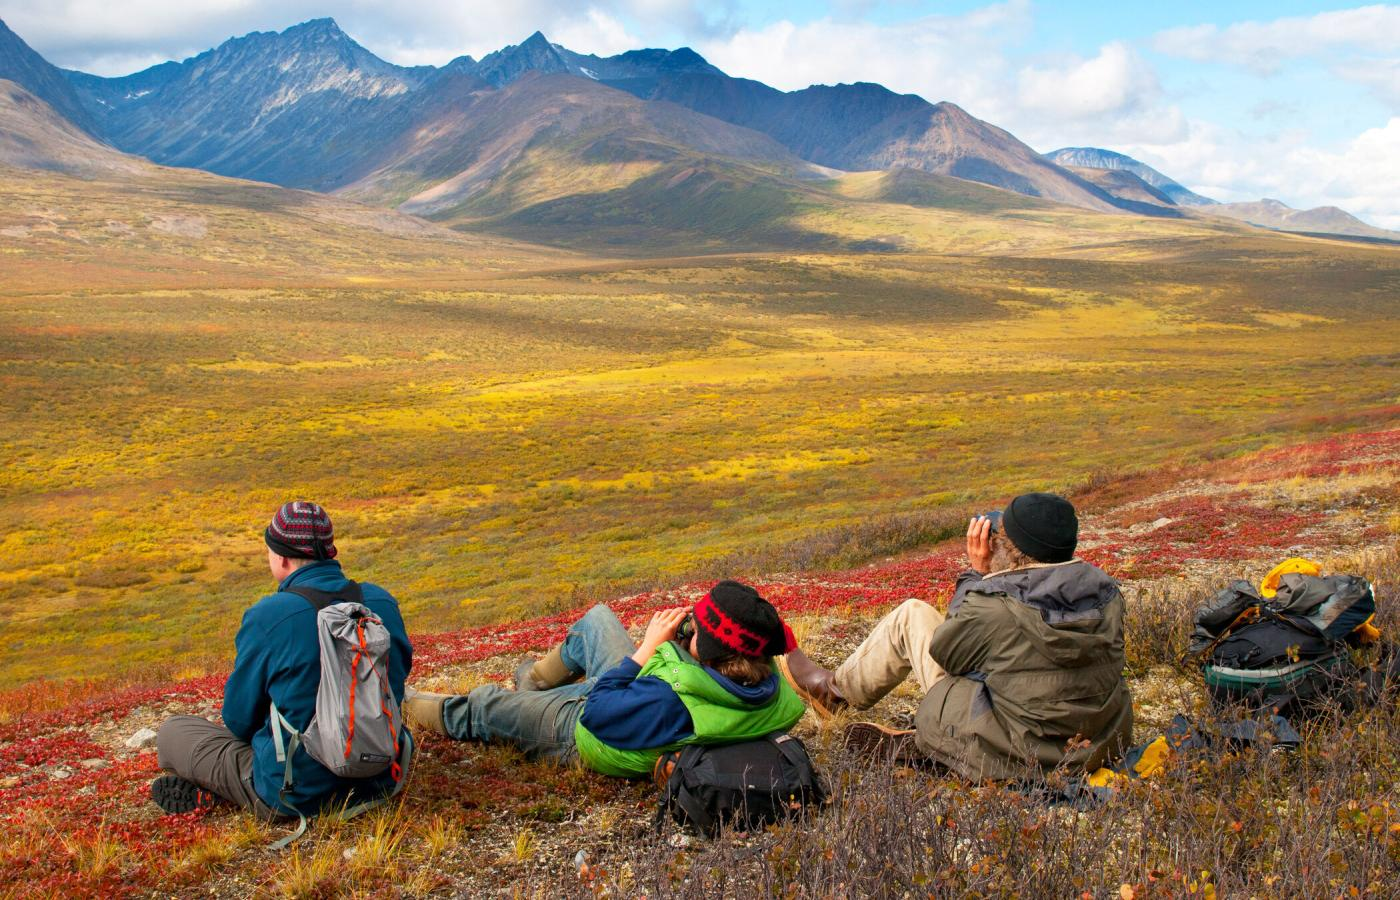 Hiking near the Canol Trail at the Dechenla Lodge and Wilderness Resort in the NWT